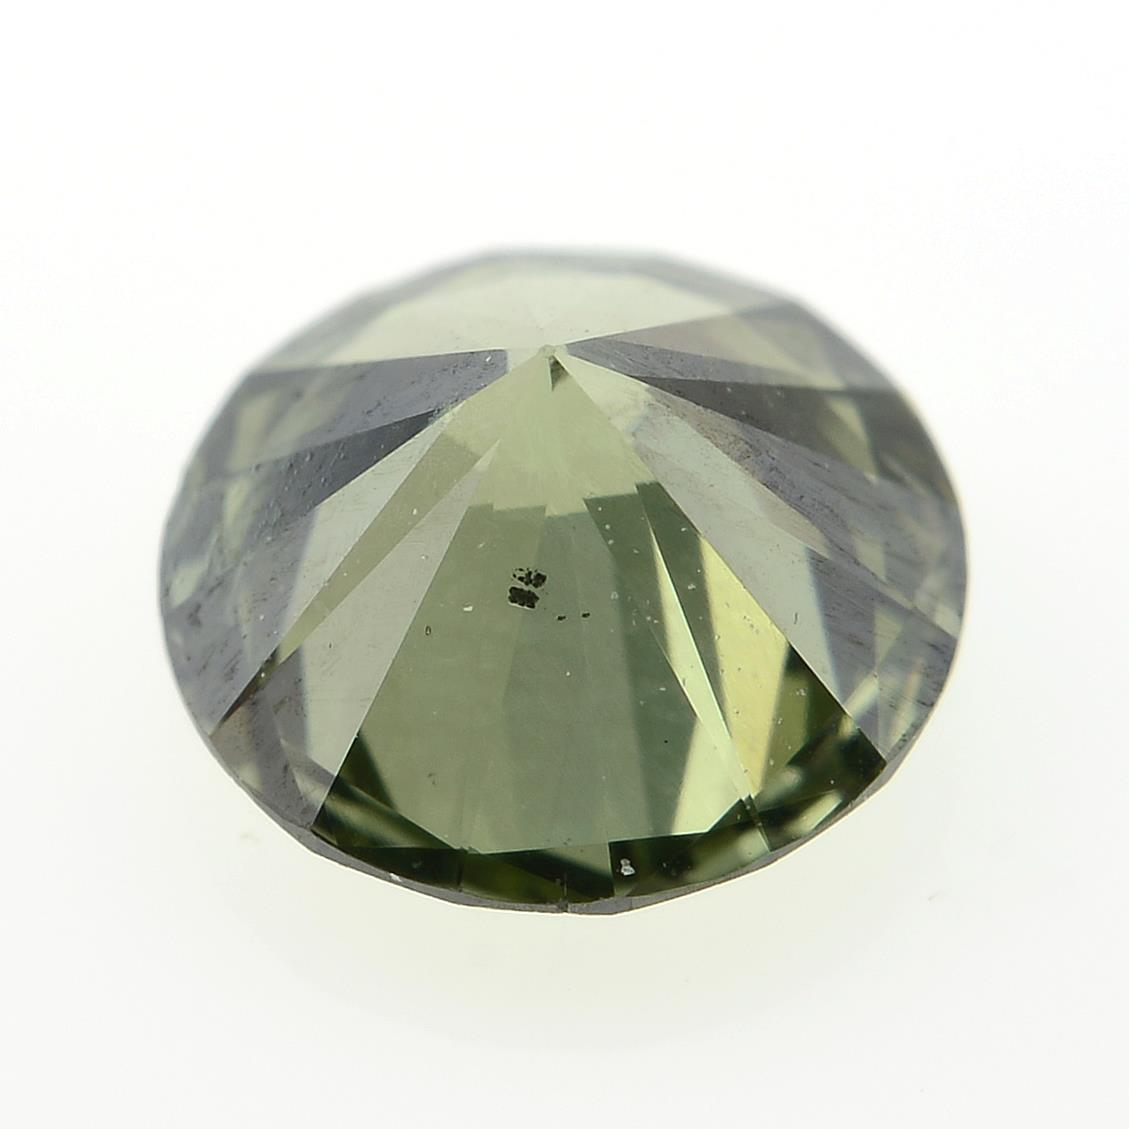 A brilliant cut 'green' diamond, weighing 0.56ct. - Image 2 of 2